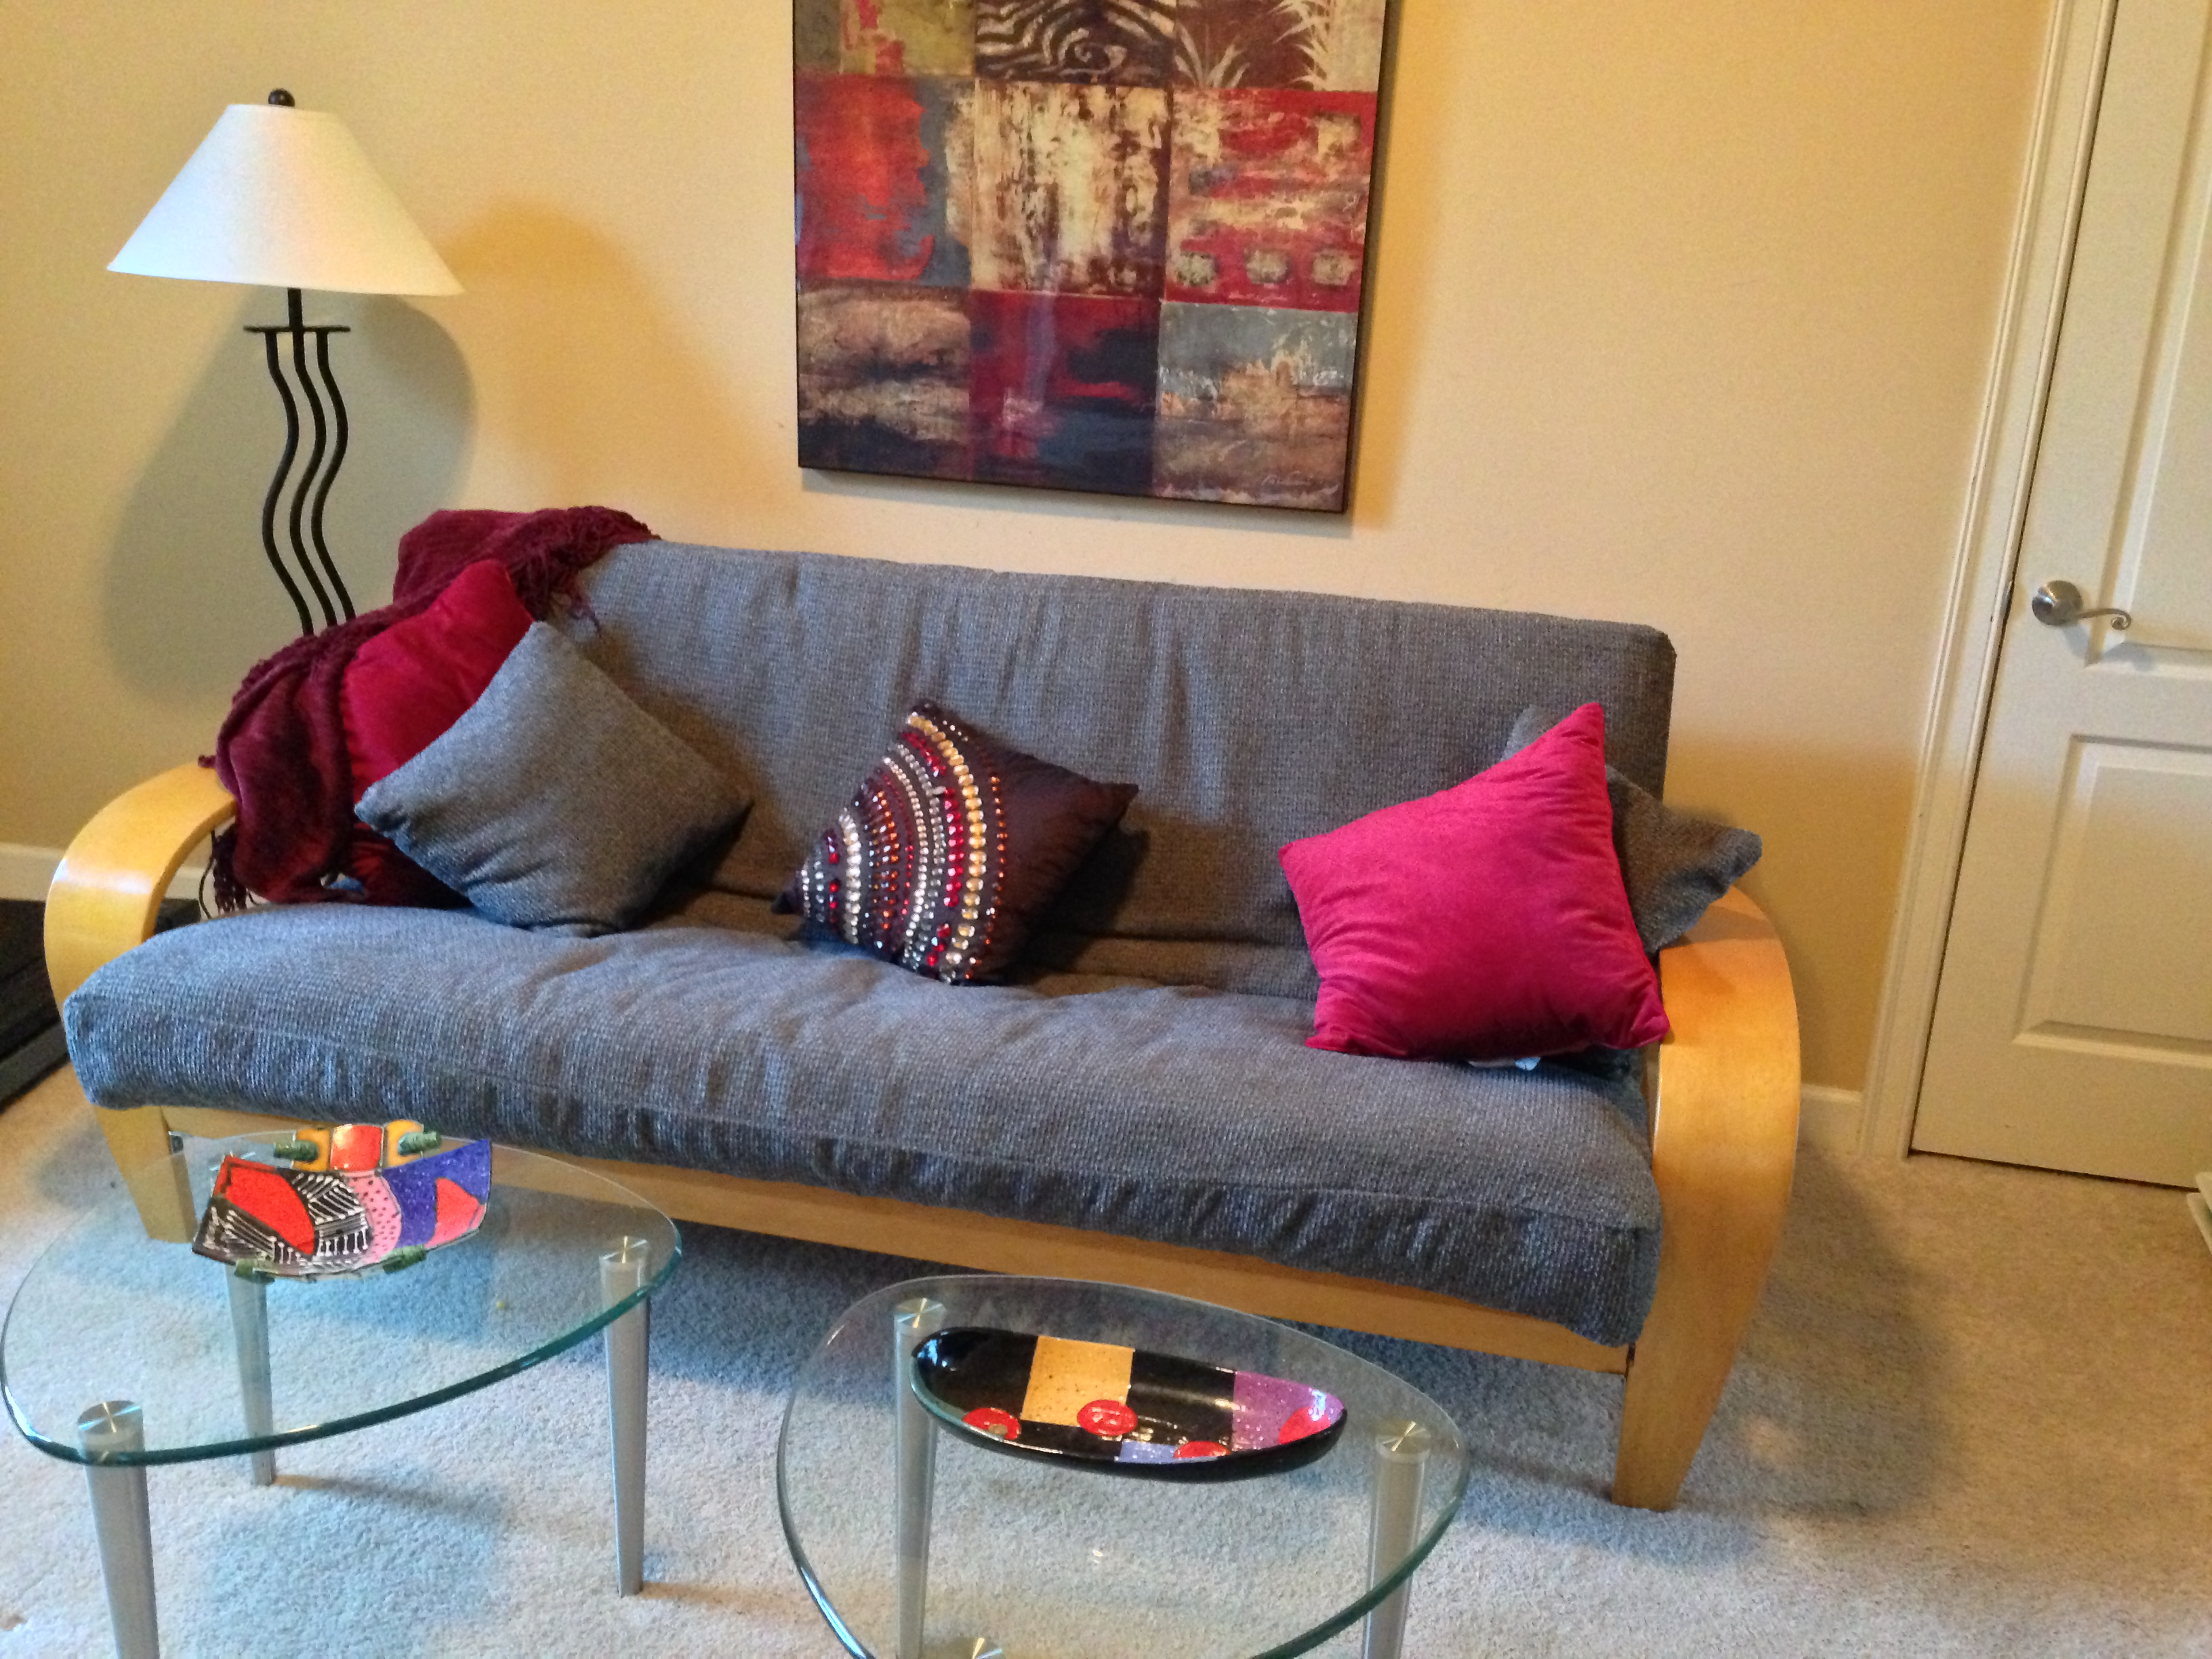 Robust Fall Is Time Futons Futon Blog Decorating Ideas Using A Futon Ideas To Decorate Your Living Room Ideas To Decorate Your Small Living Room living room Ideas For Decorating Your Living Room